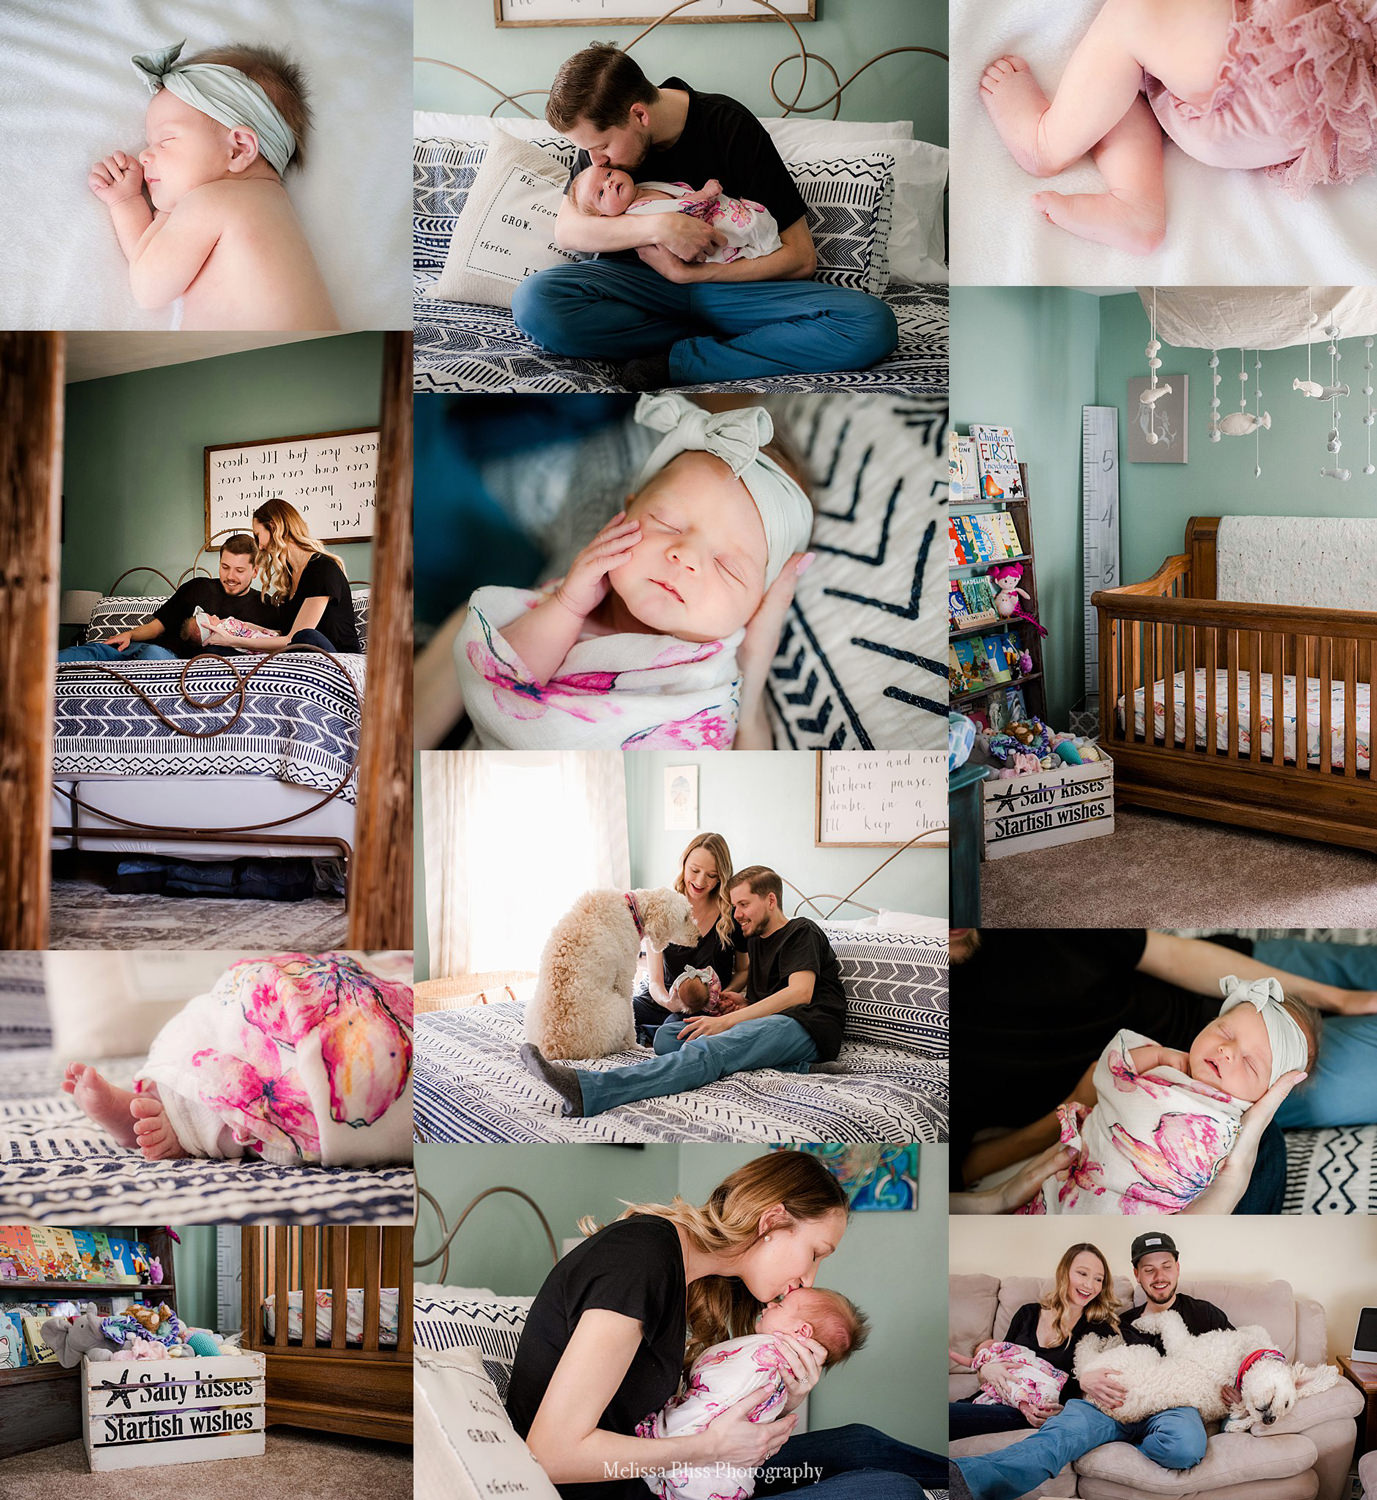 chesapeake-newborn-lifestyle-pictures-at-home-melissa-bliss-photography-cheaspeake-newborn-photographer.jpg